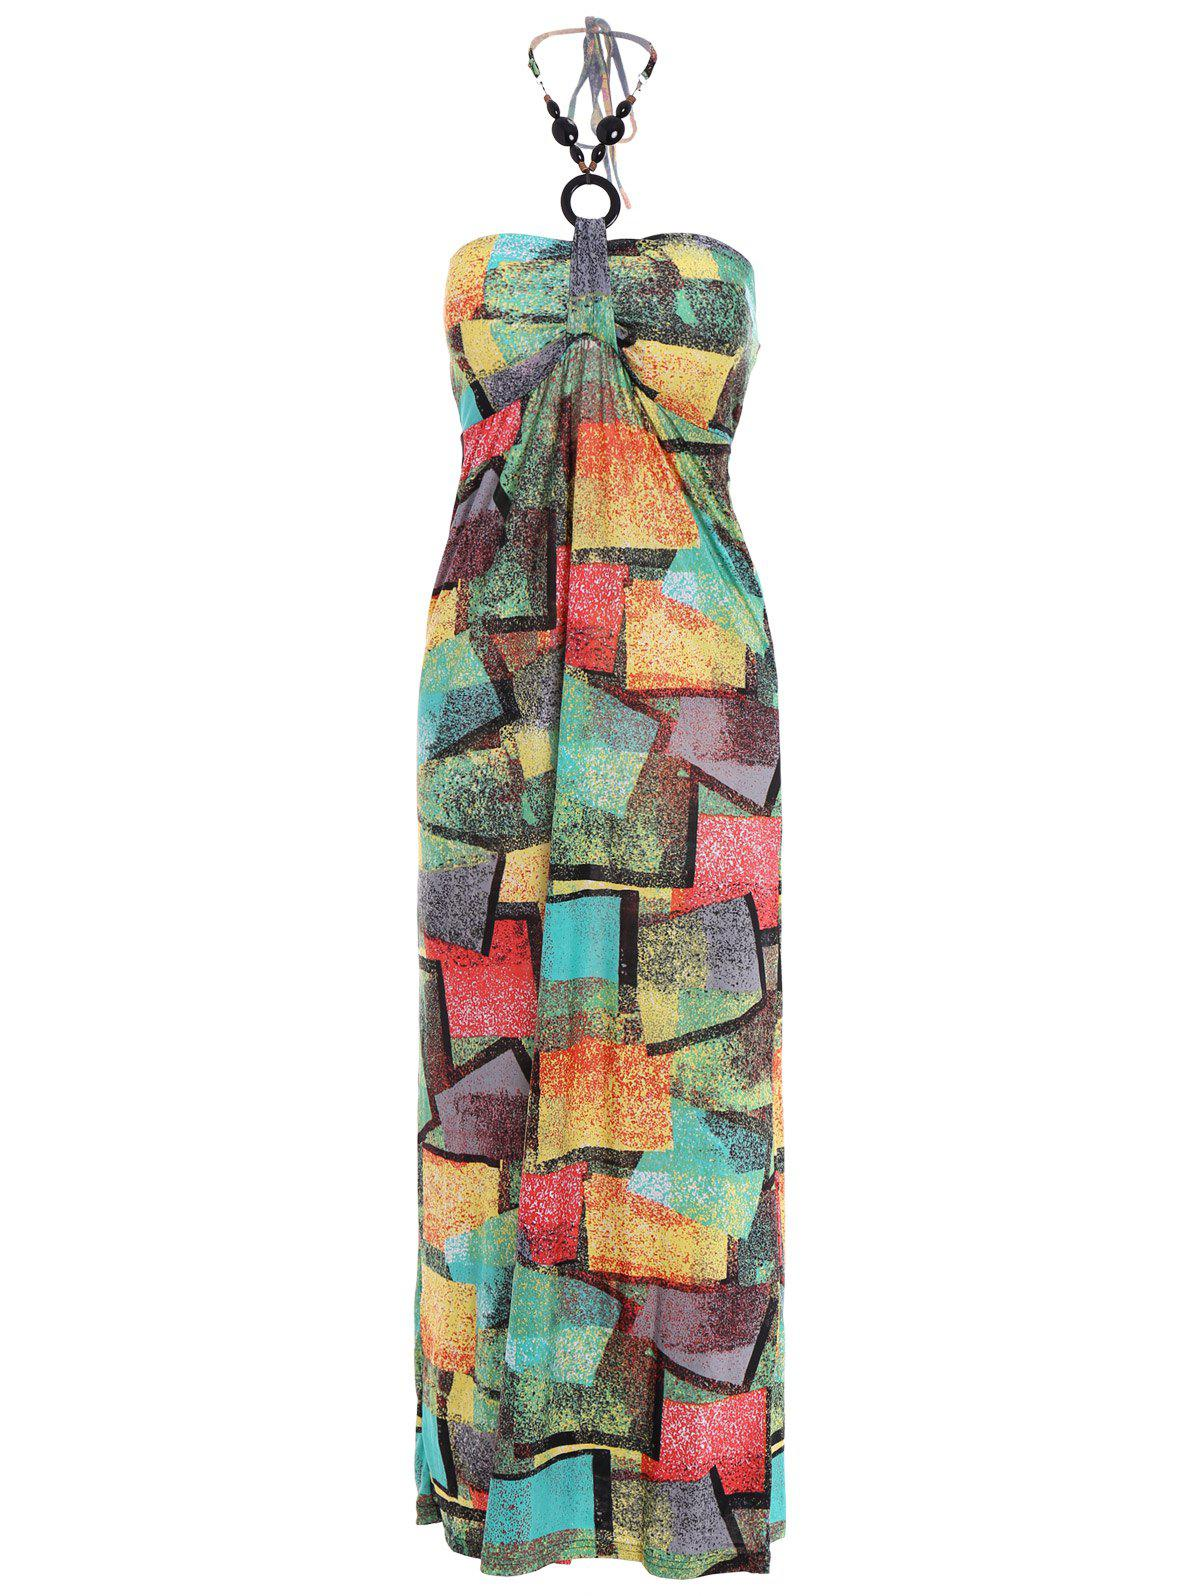 Bohemian Halter Neck Sleeveless Printed Women's Dress - GREEN M